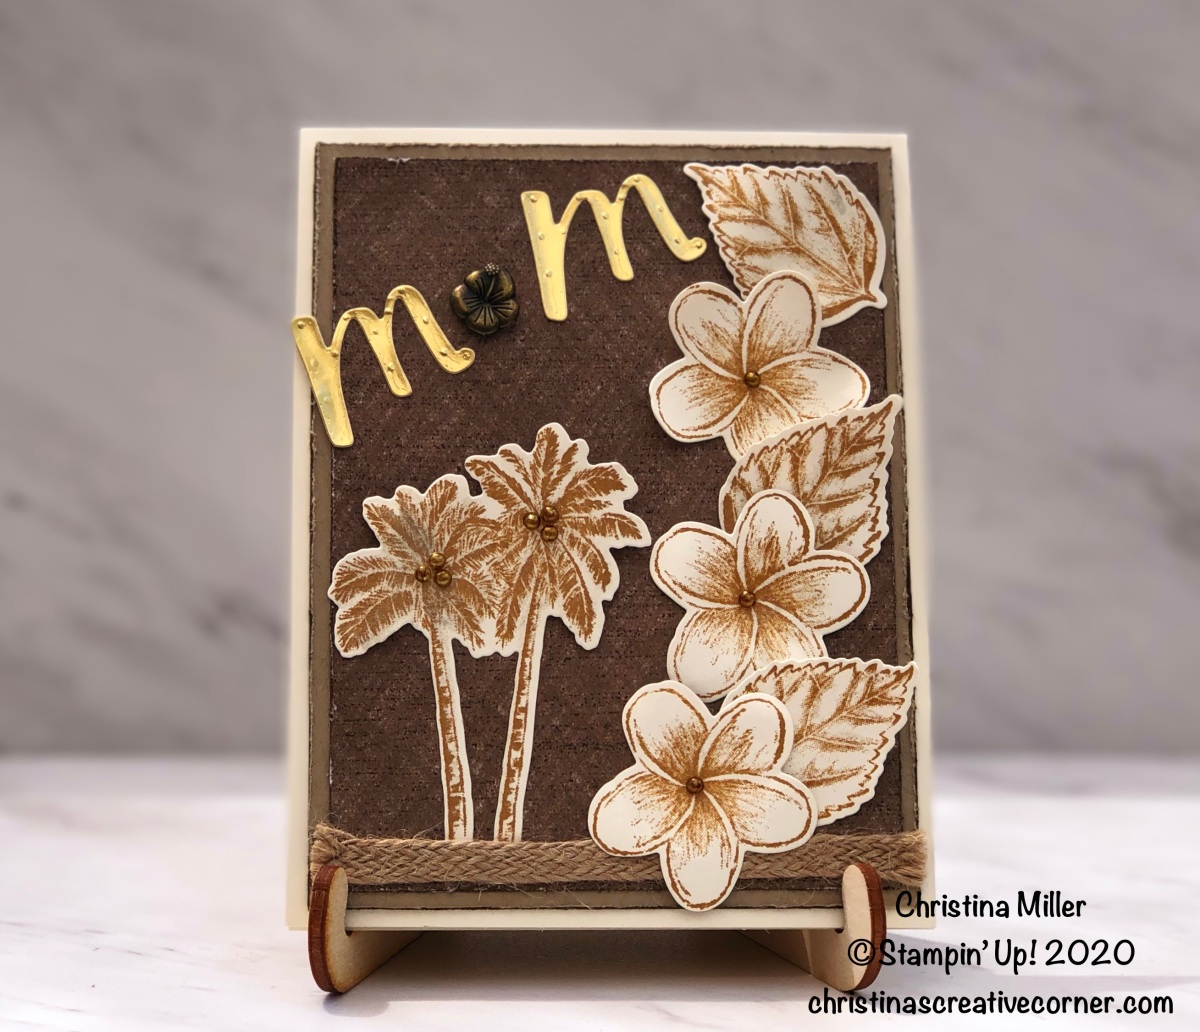 Sepia Tropical theme for Mother's Day!